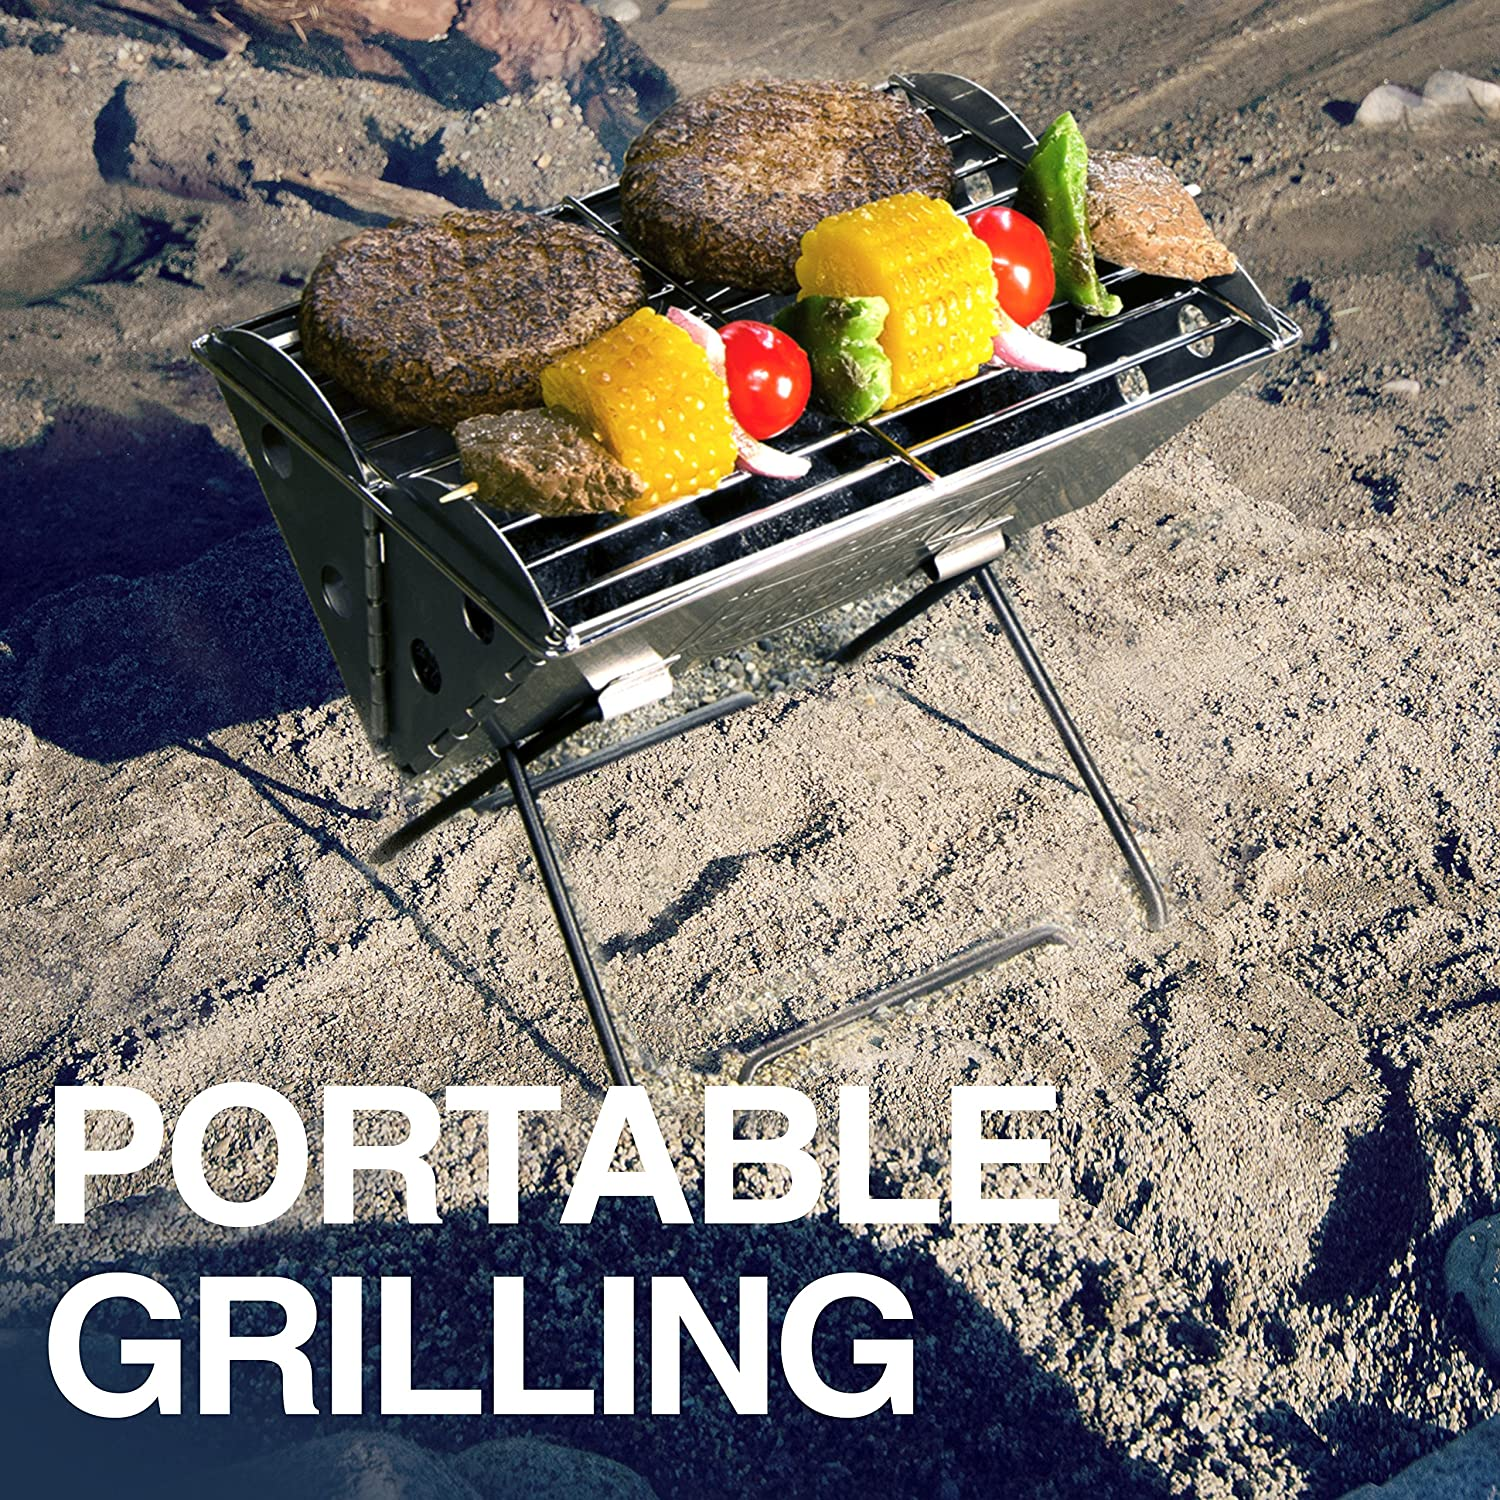 UCO Flatpack Portable Stainless Steel Grill and Fire Pit Review